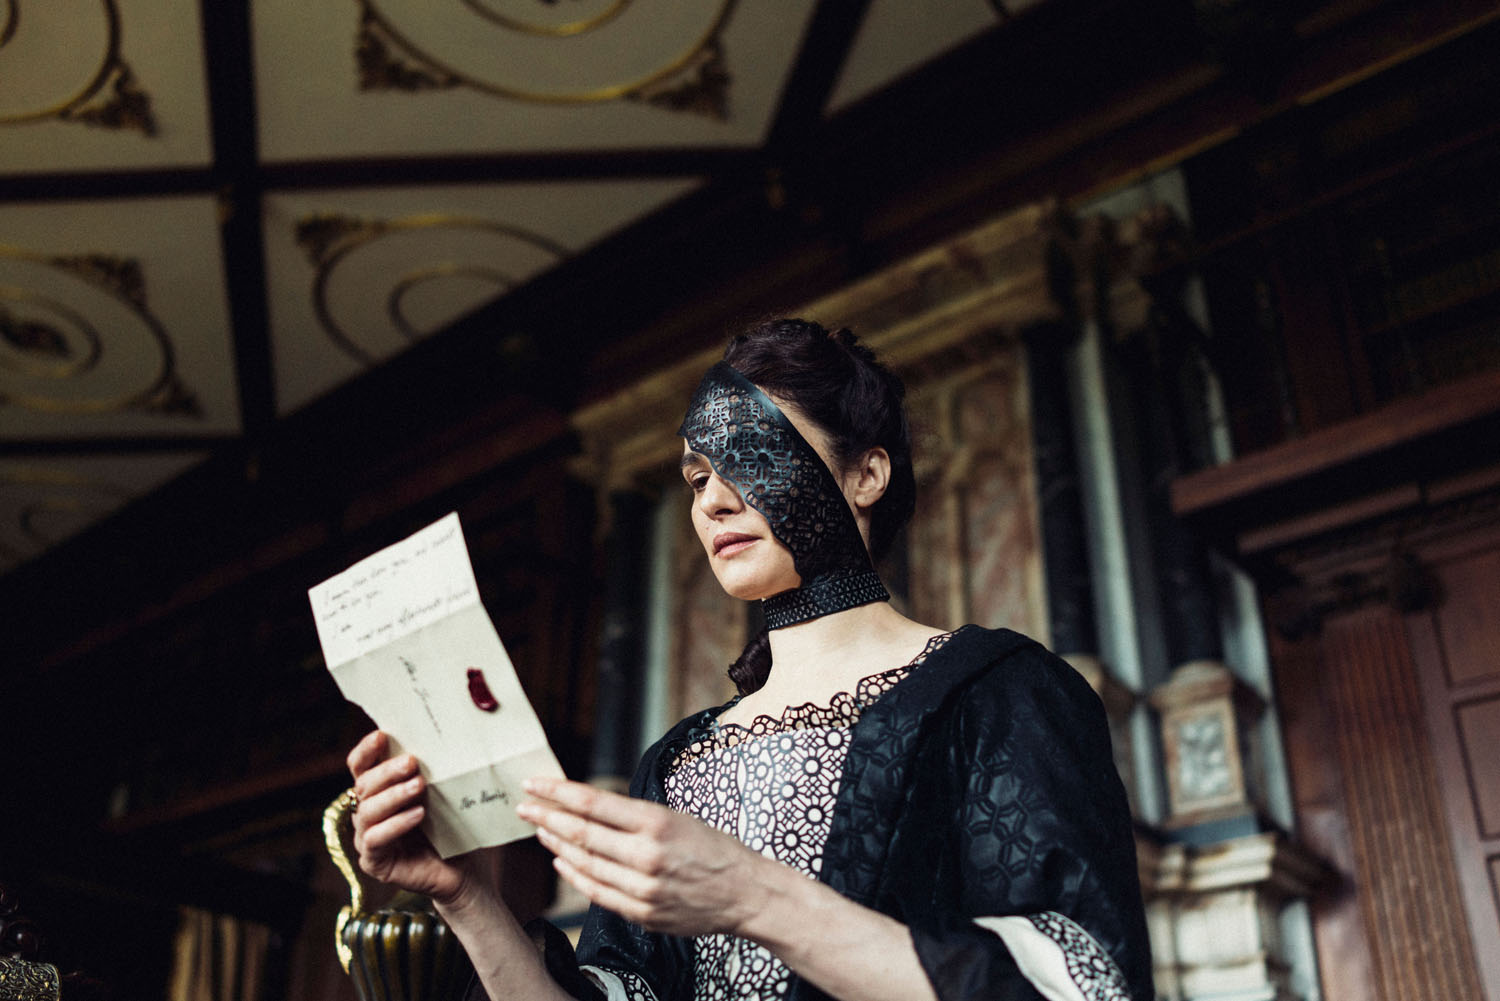 Rachel Weisz receives Golden Globe nomination for The Favourite